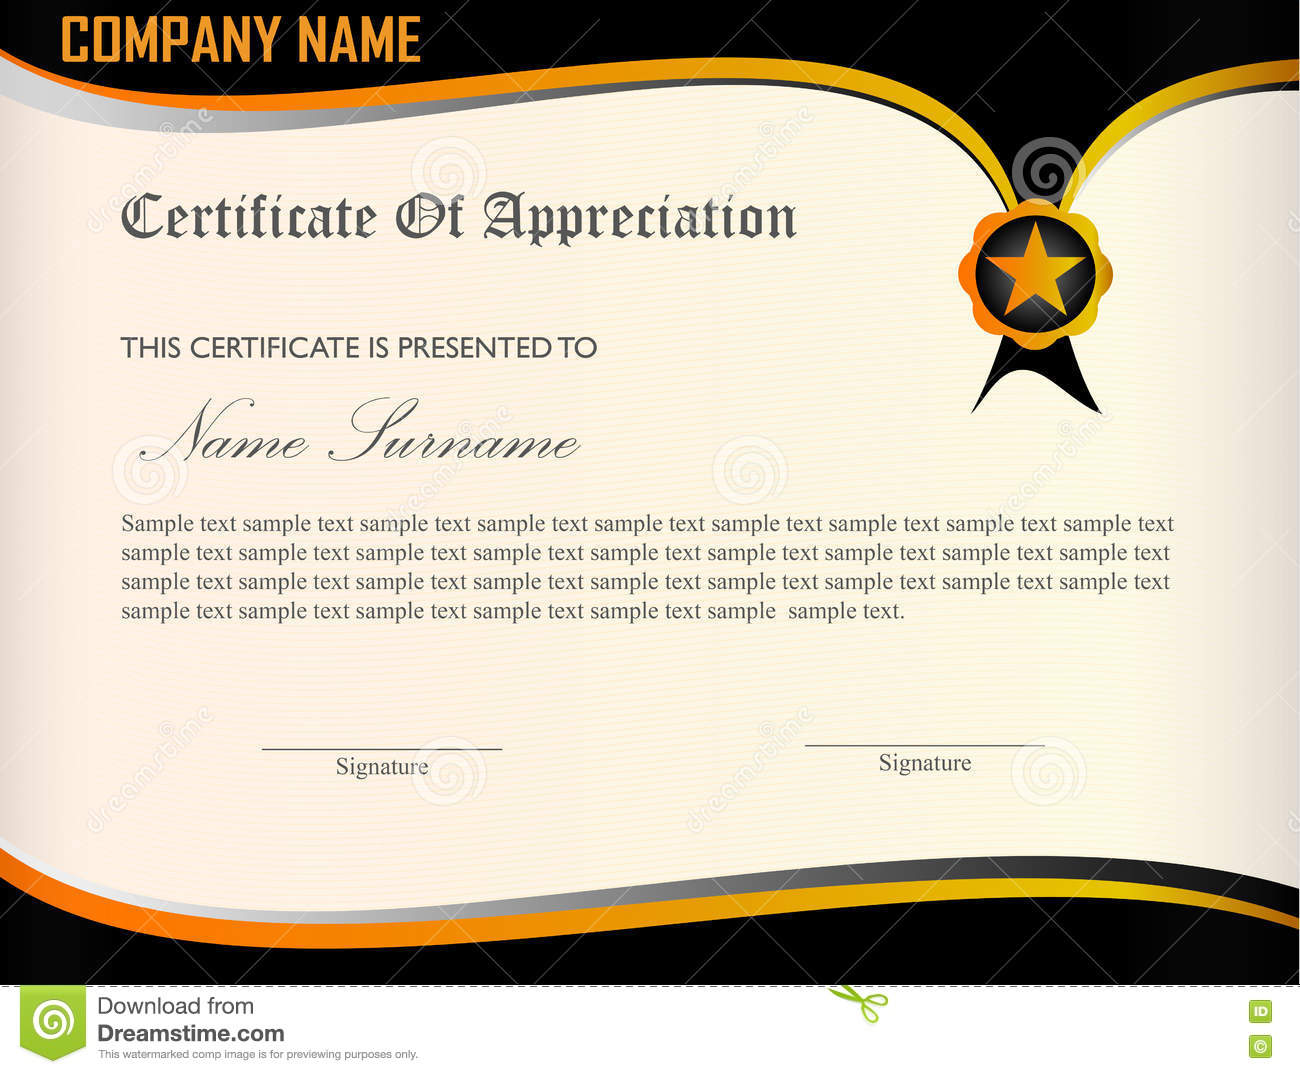 Modern certificate of appreciation design tiredriveeasy modern certificate of appreciation design certificate appreciation template yadclub Images